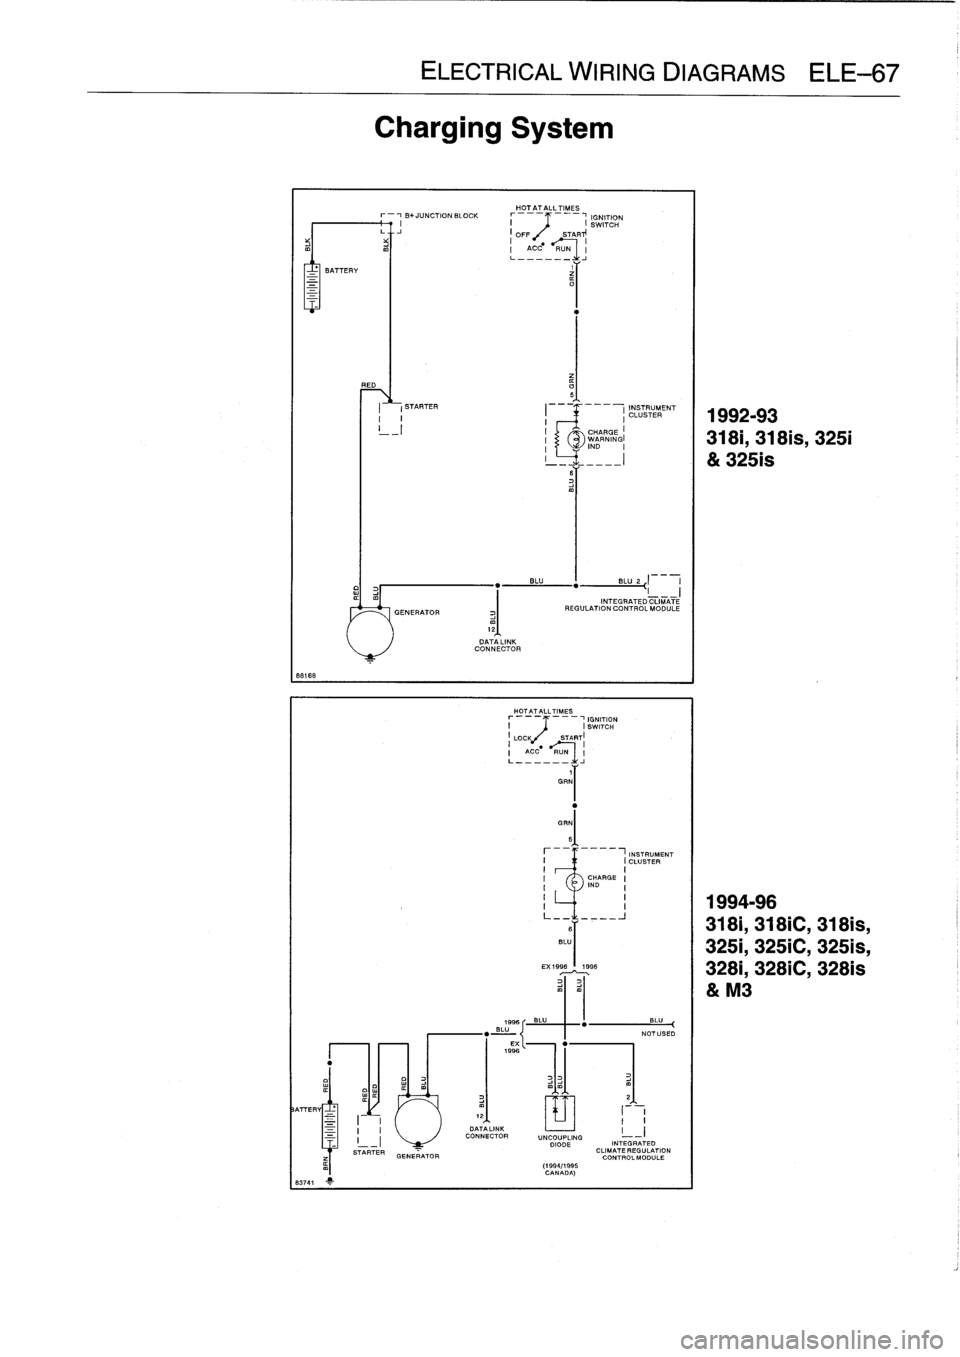 1998 bmw z3 radio wiring diagram ez go charger 2000 great installation of fuse locations nissan maxima electrical